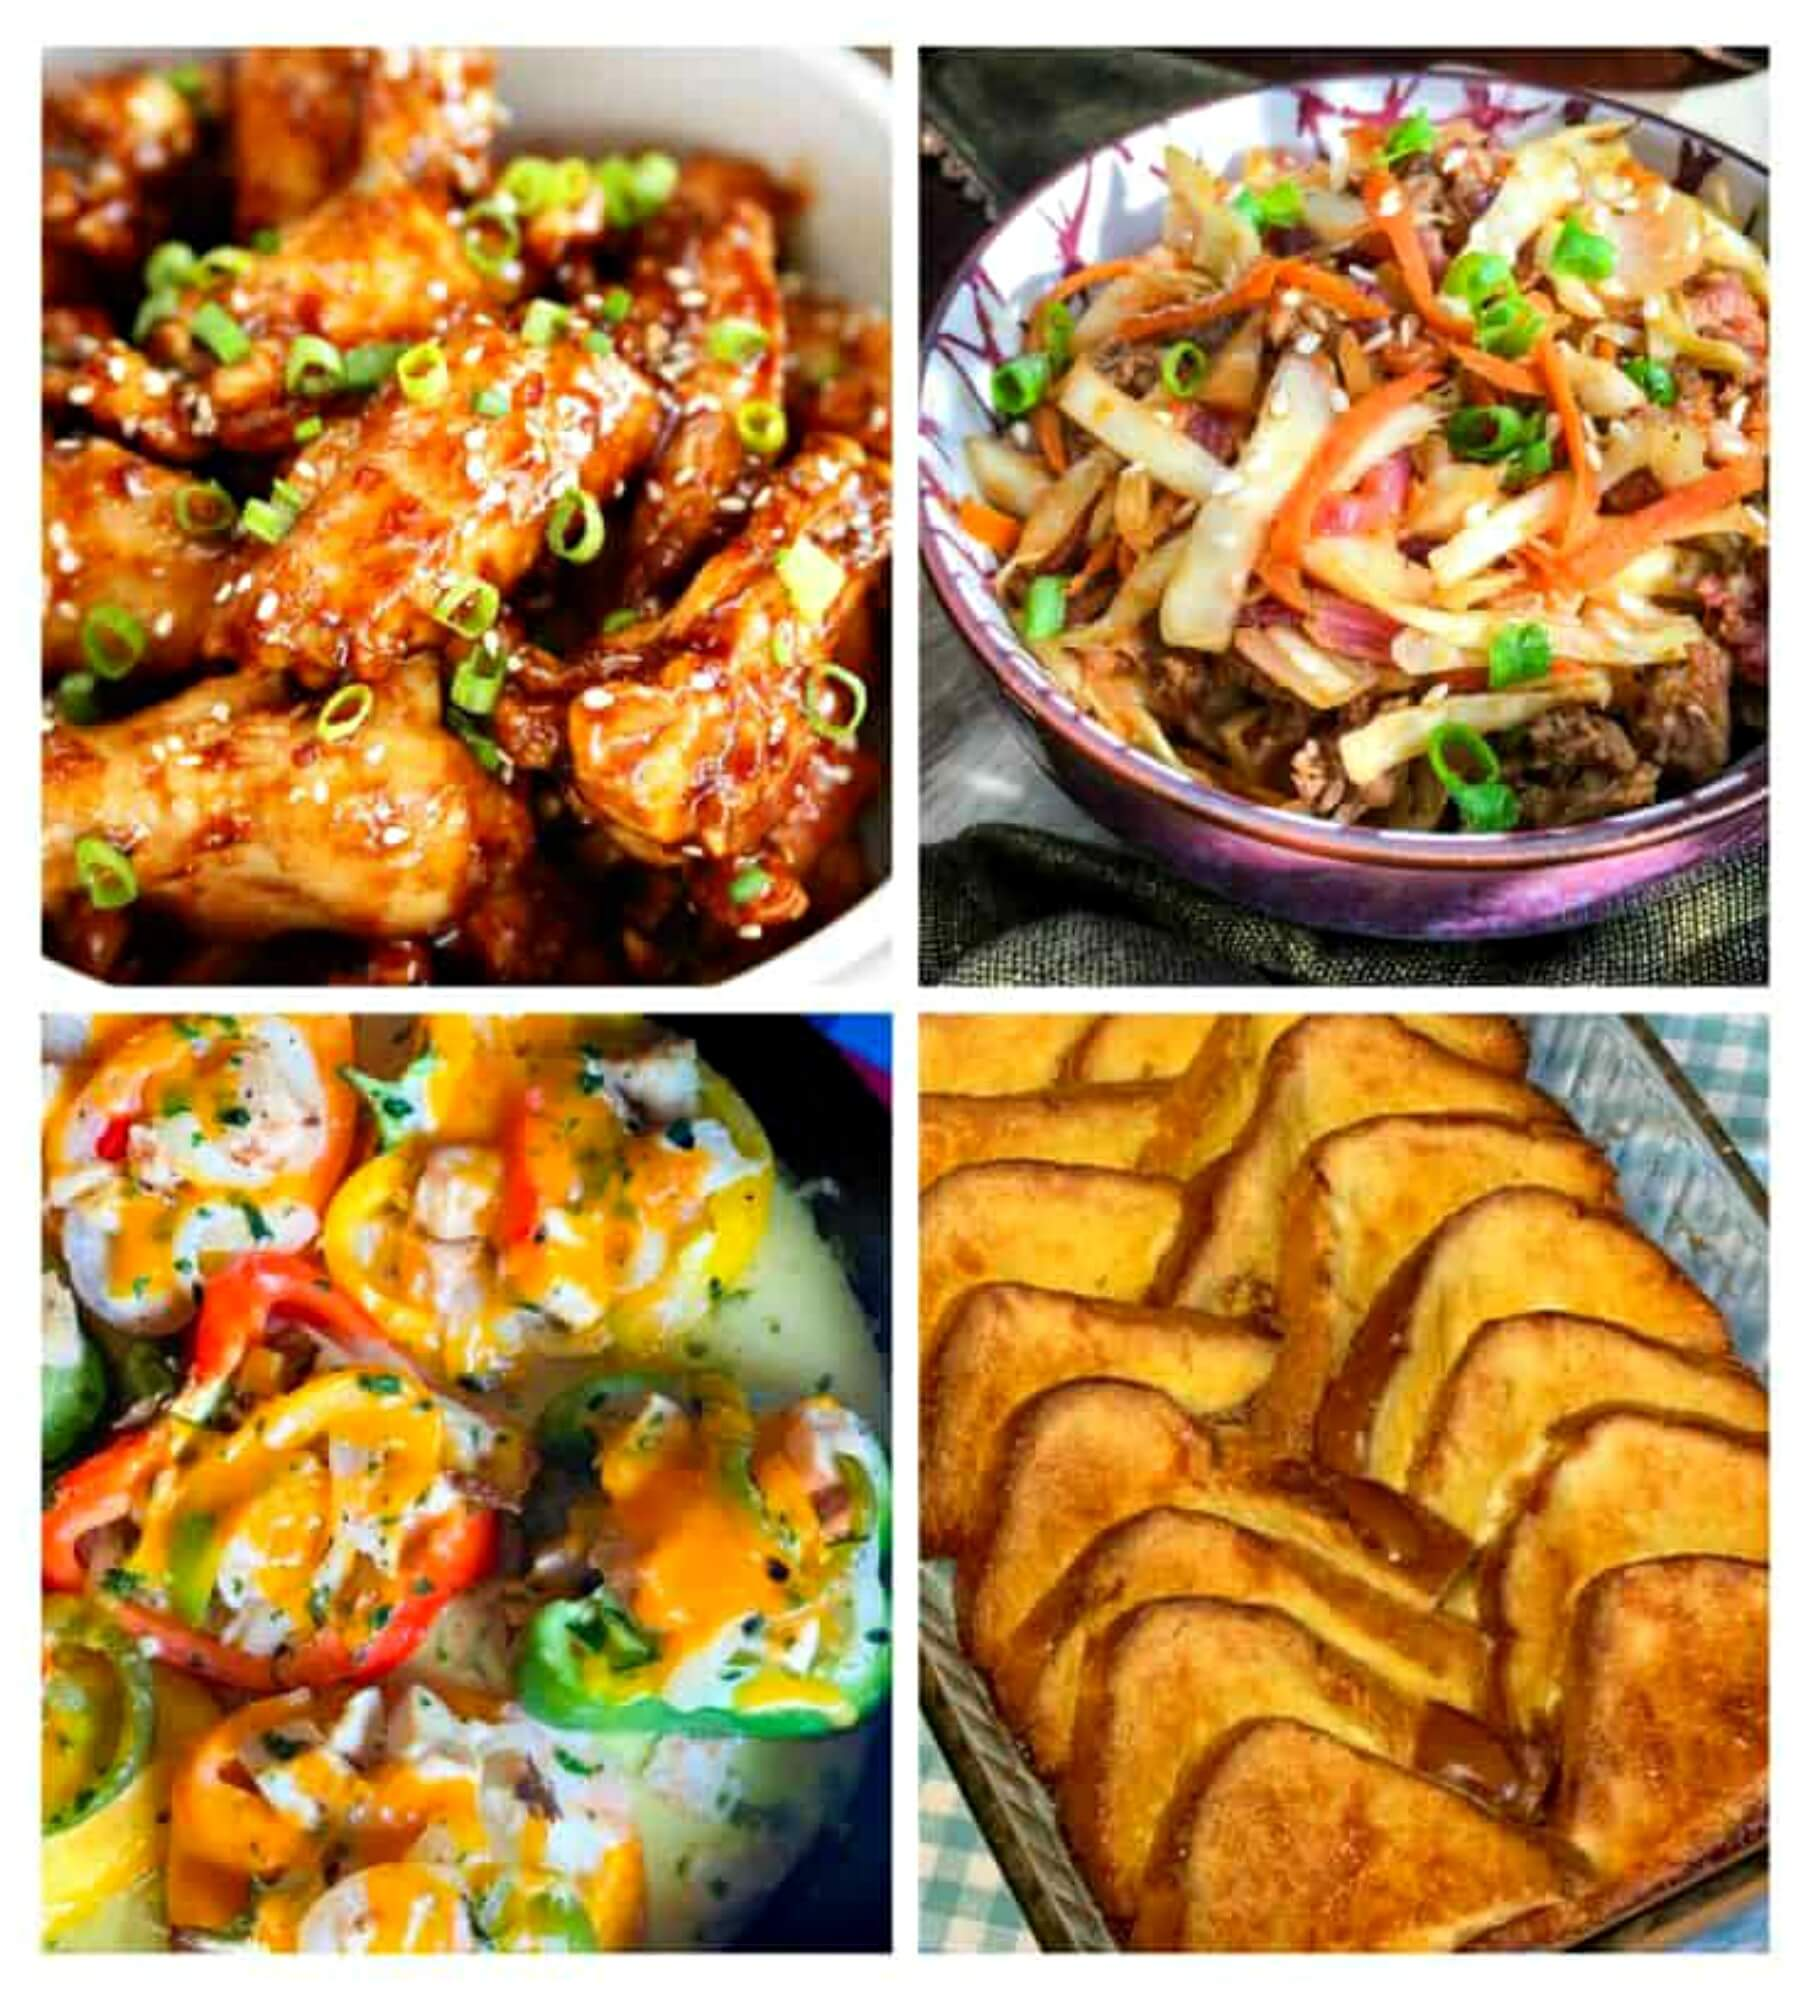 Meal Plan Monday #188 Collage of featured recipes